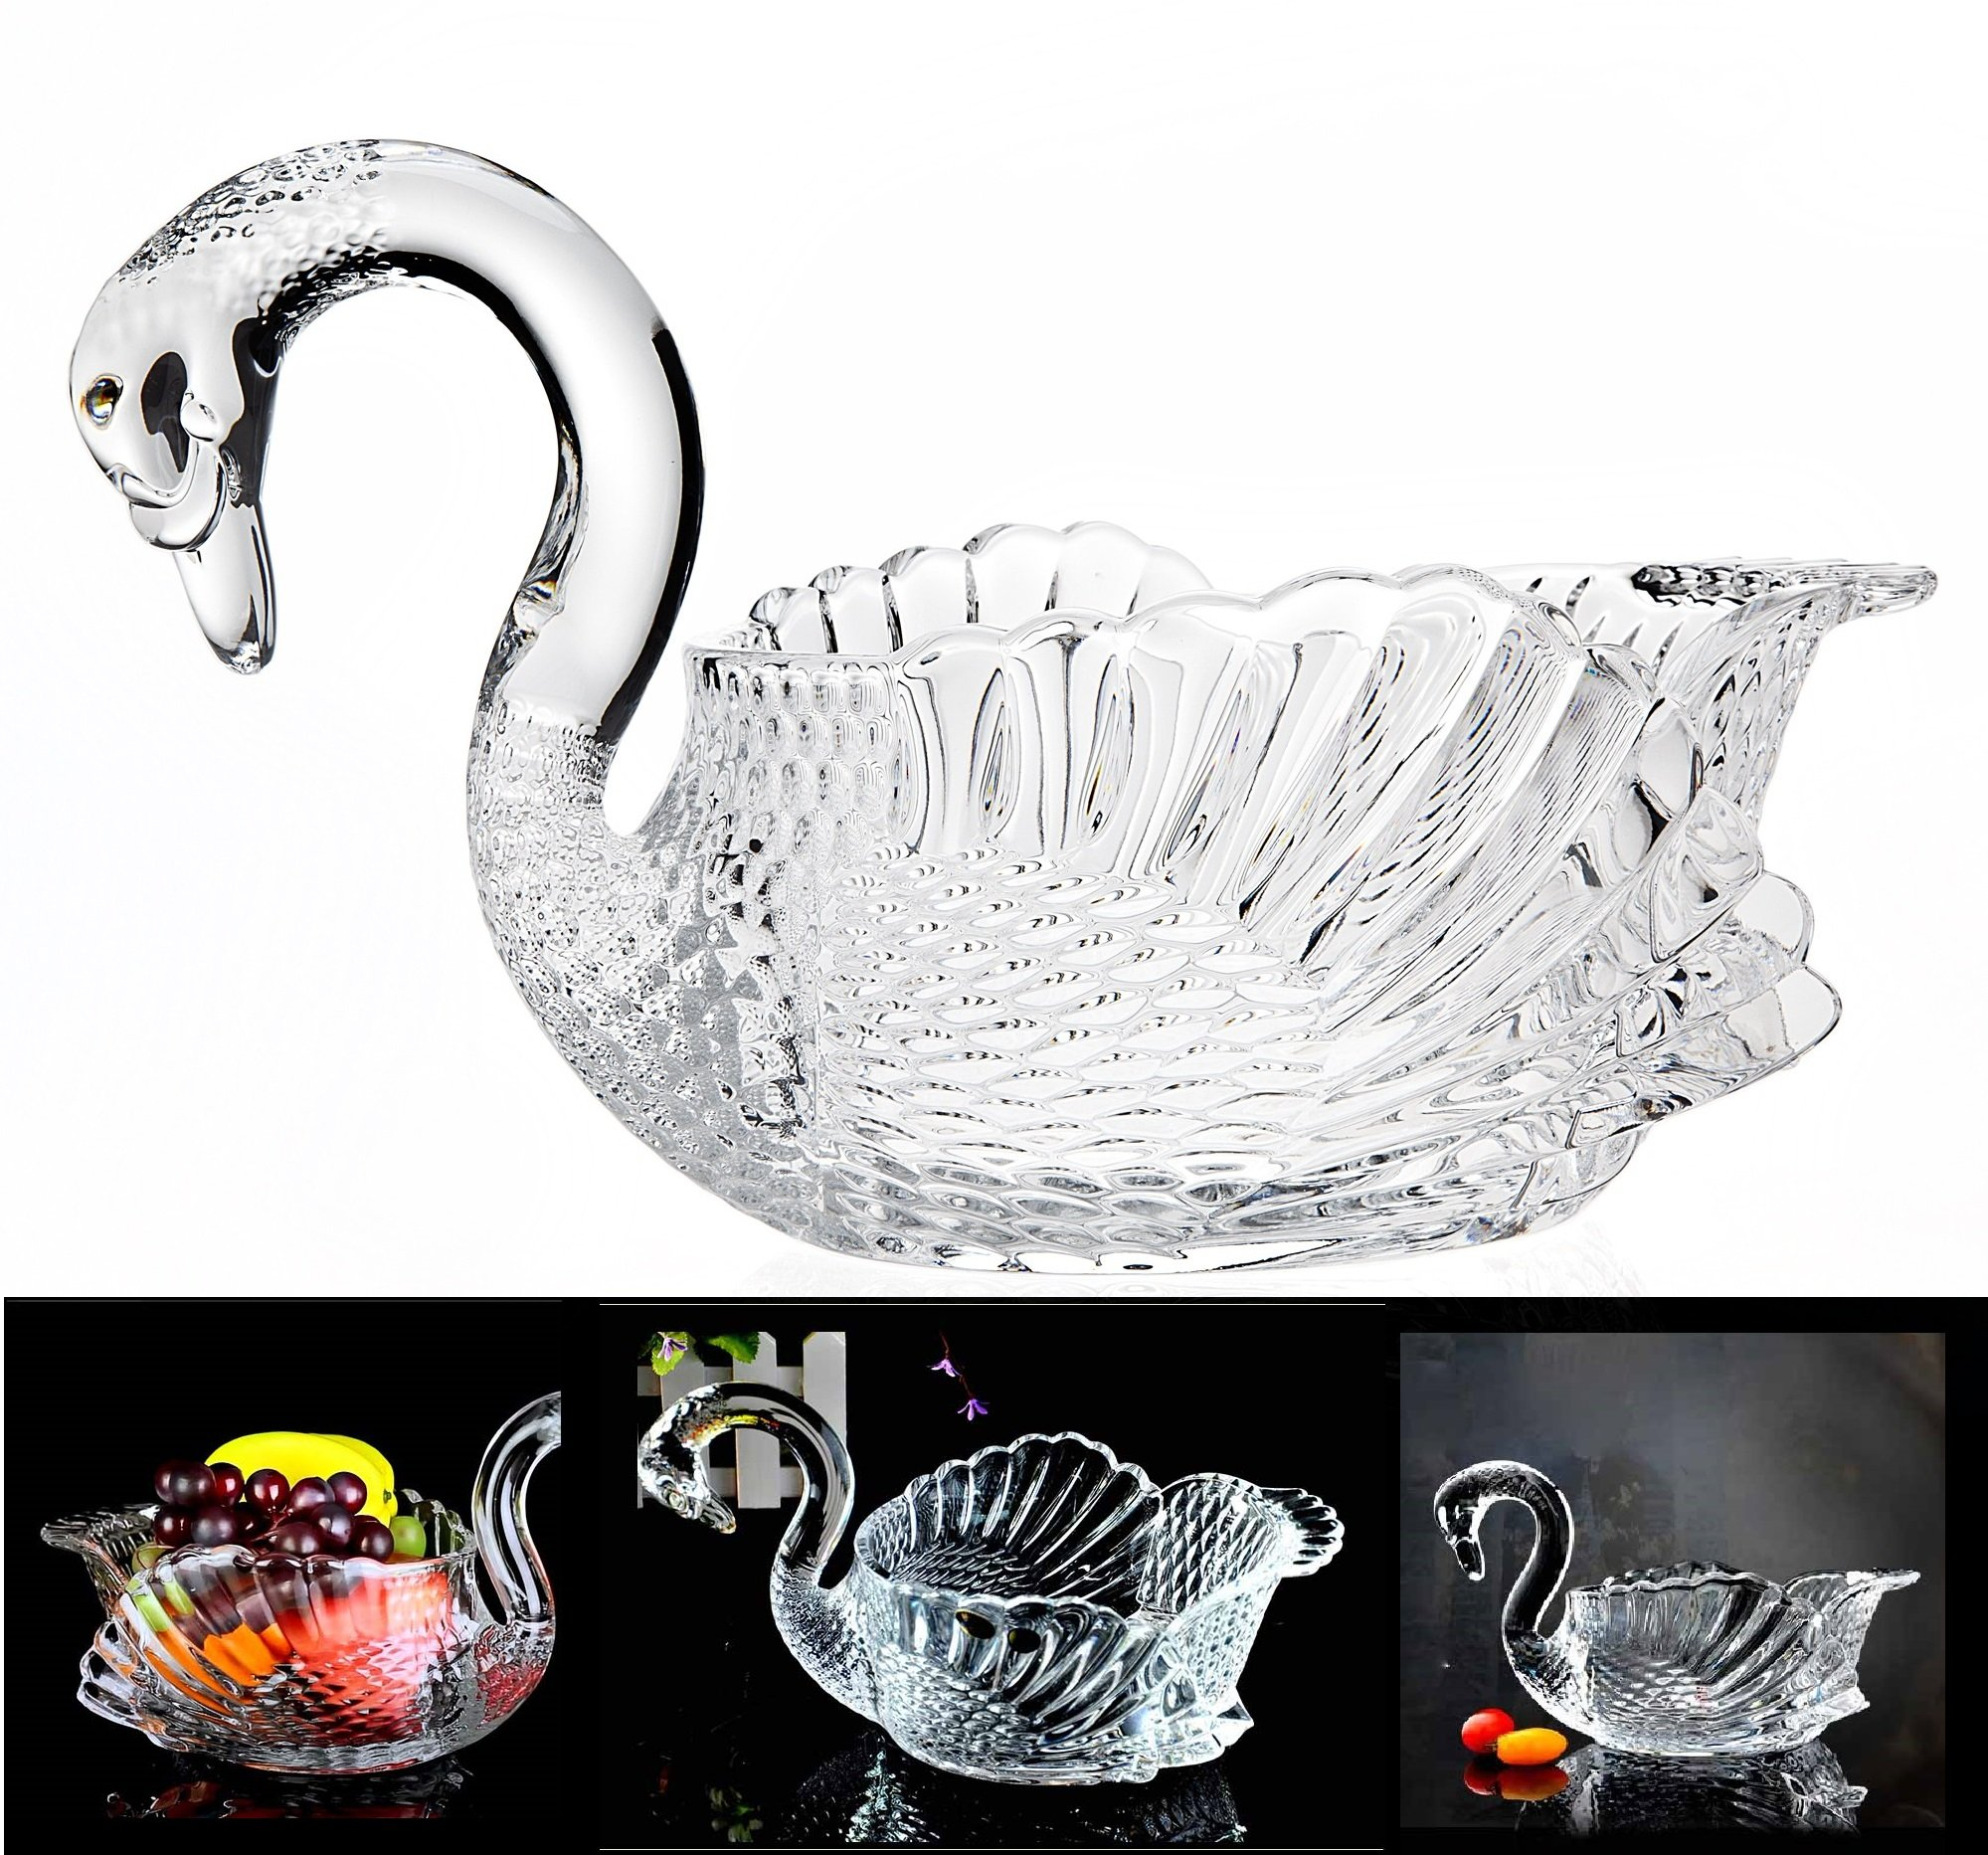 Crystal Swan Serving Bowl Centerpiece For Home,Office,Wedding Decor